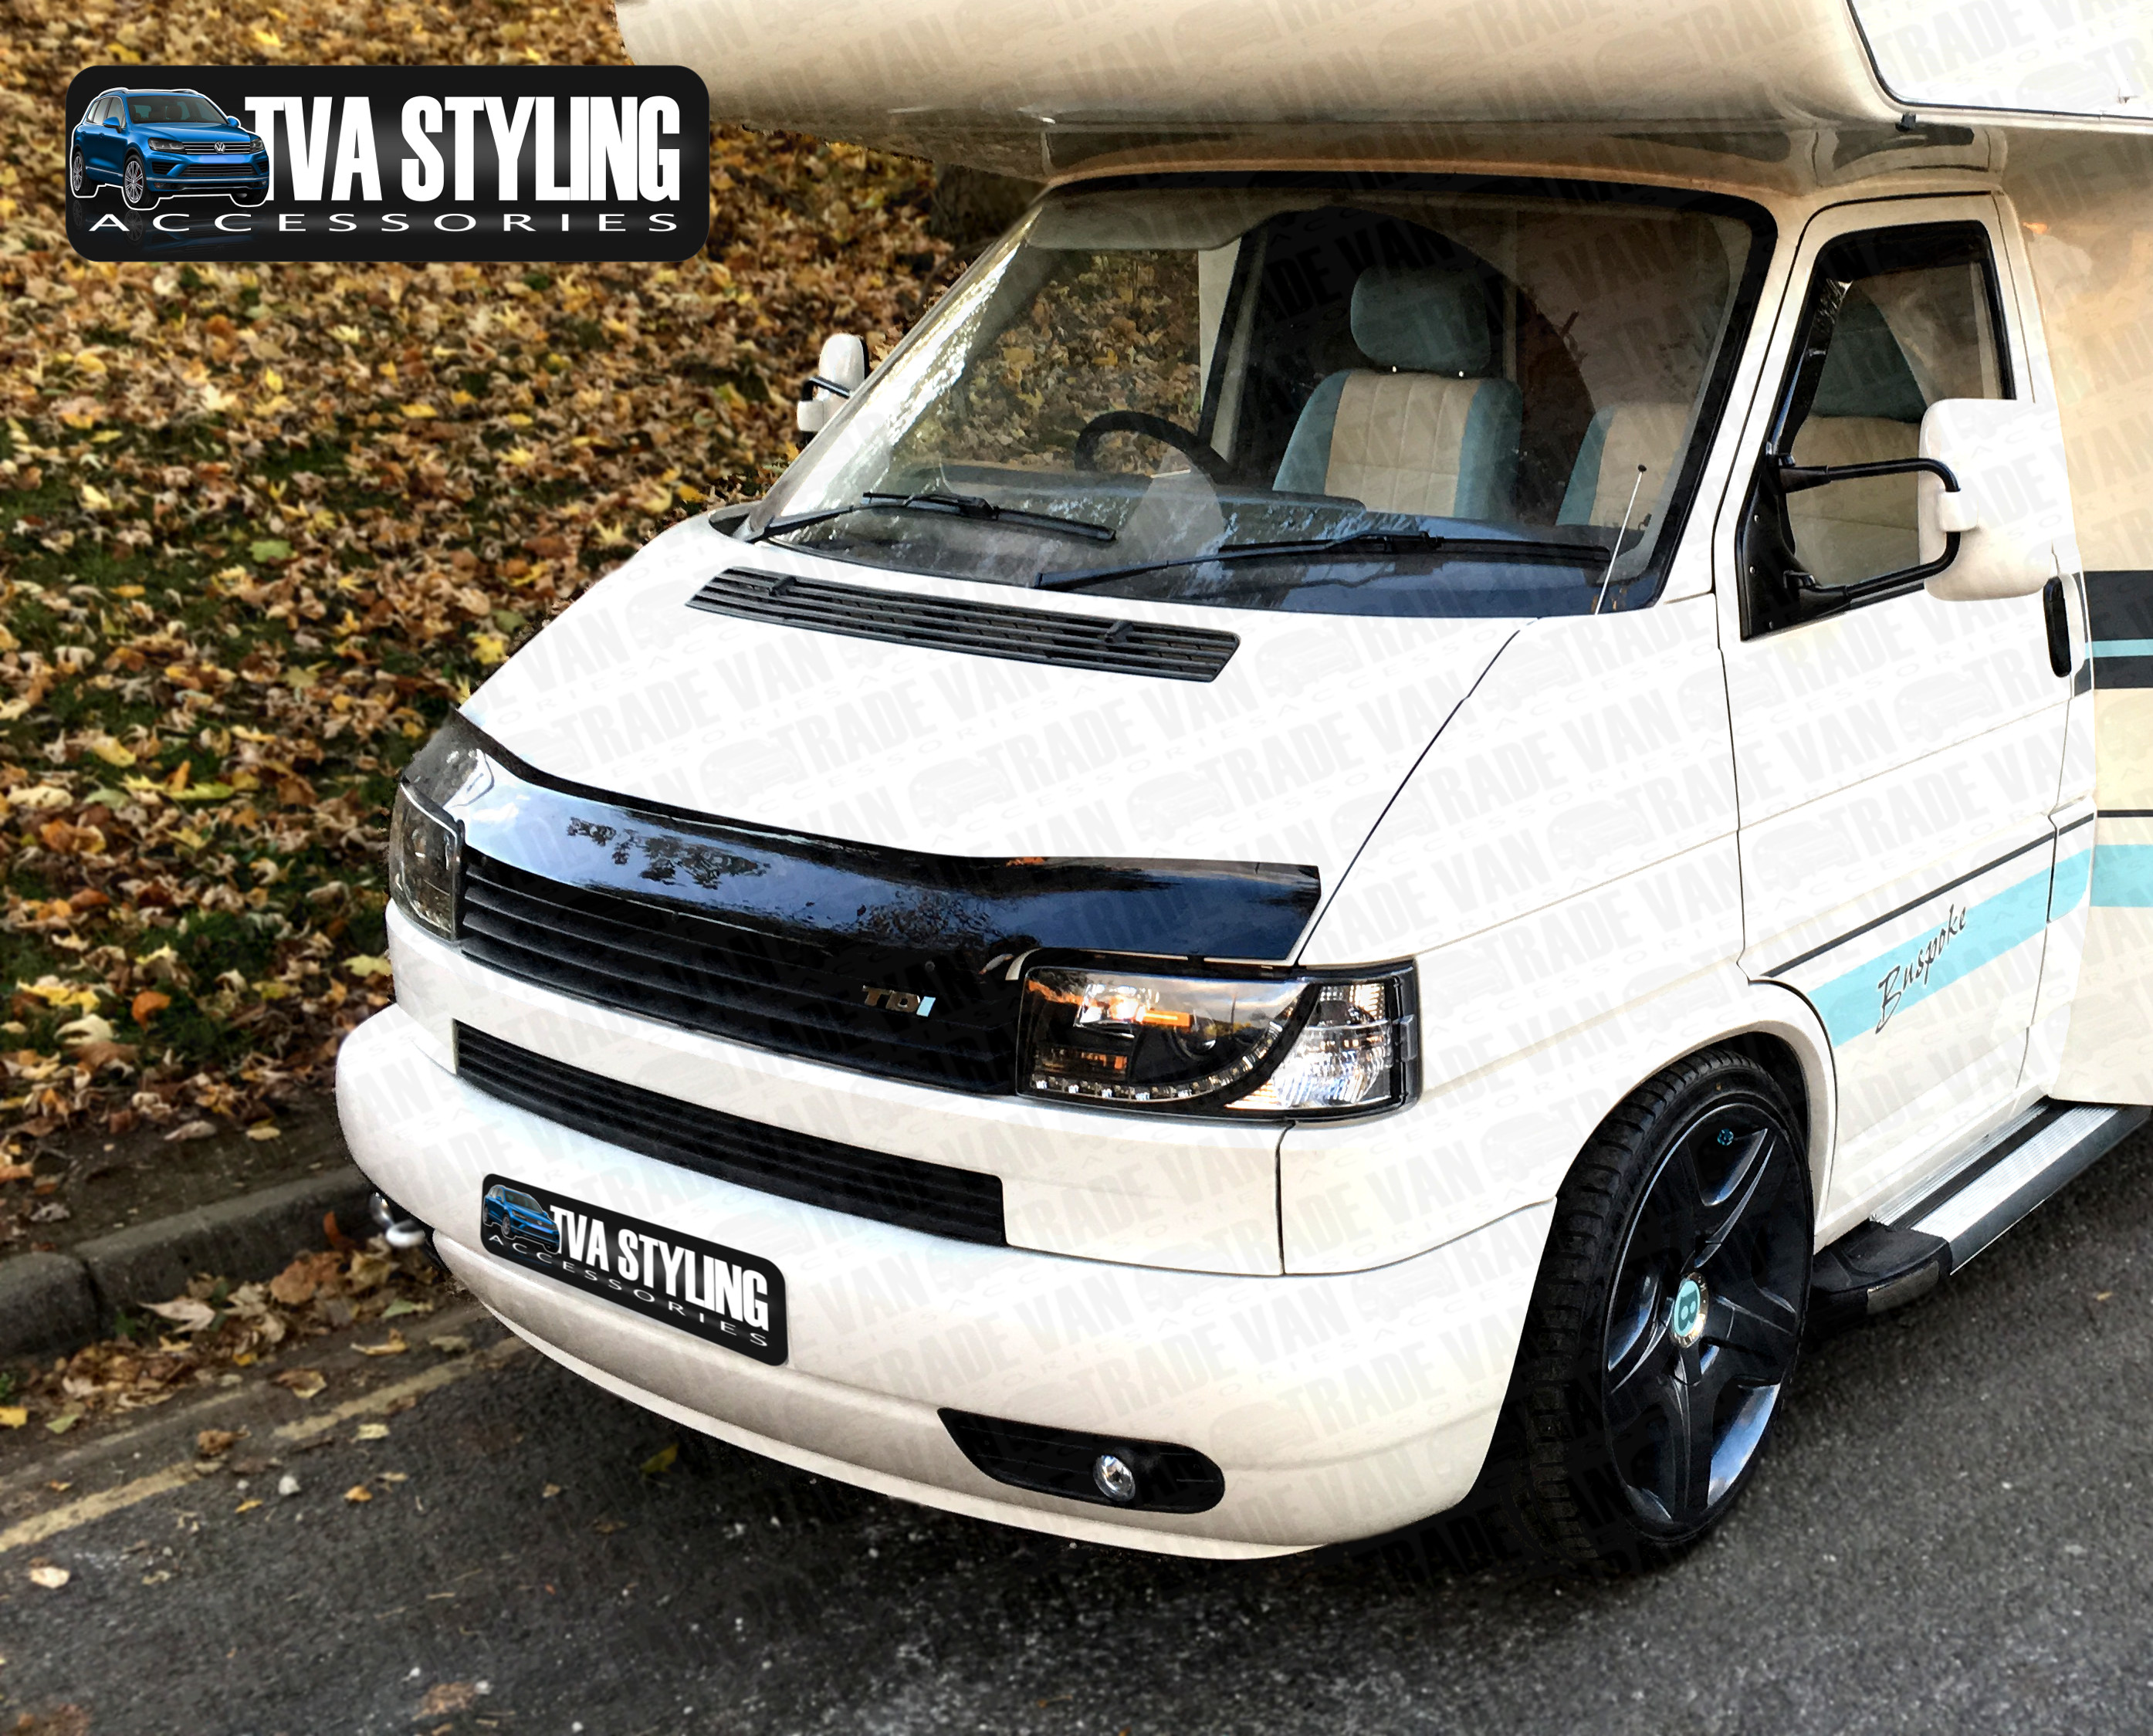 vw t4 bonnet hood guard volkswagen t4 front styling accessories trade van and tva styling. Black Bedroom Furniture Sets. Home Design Ideas